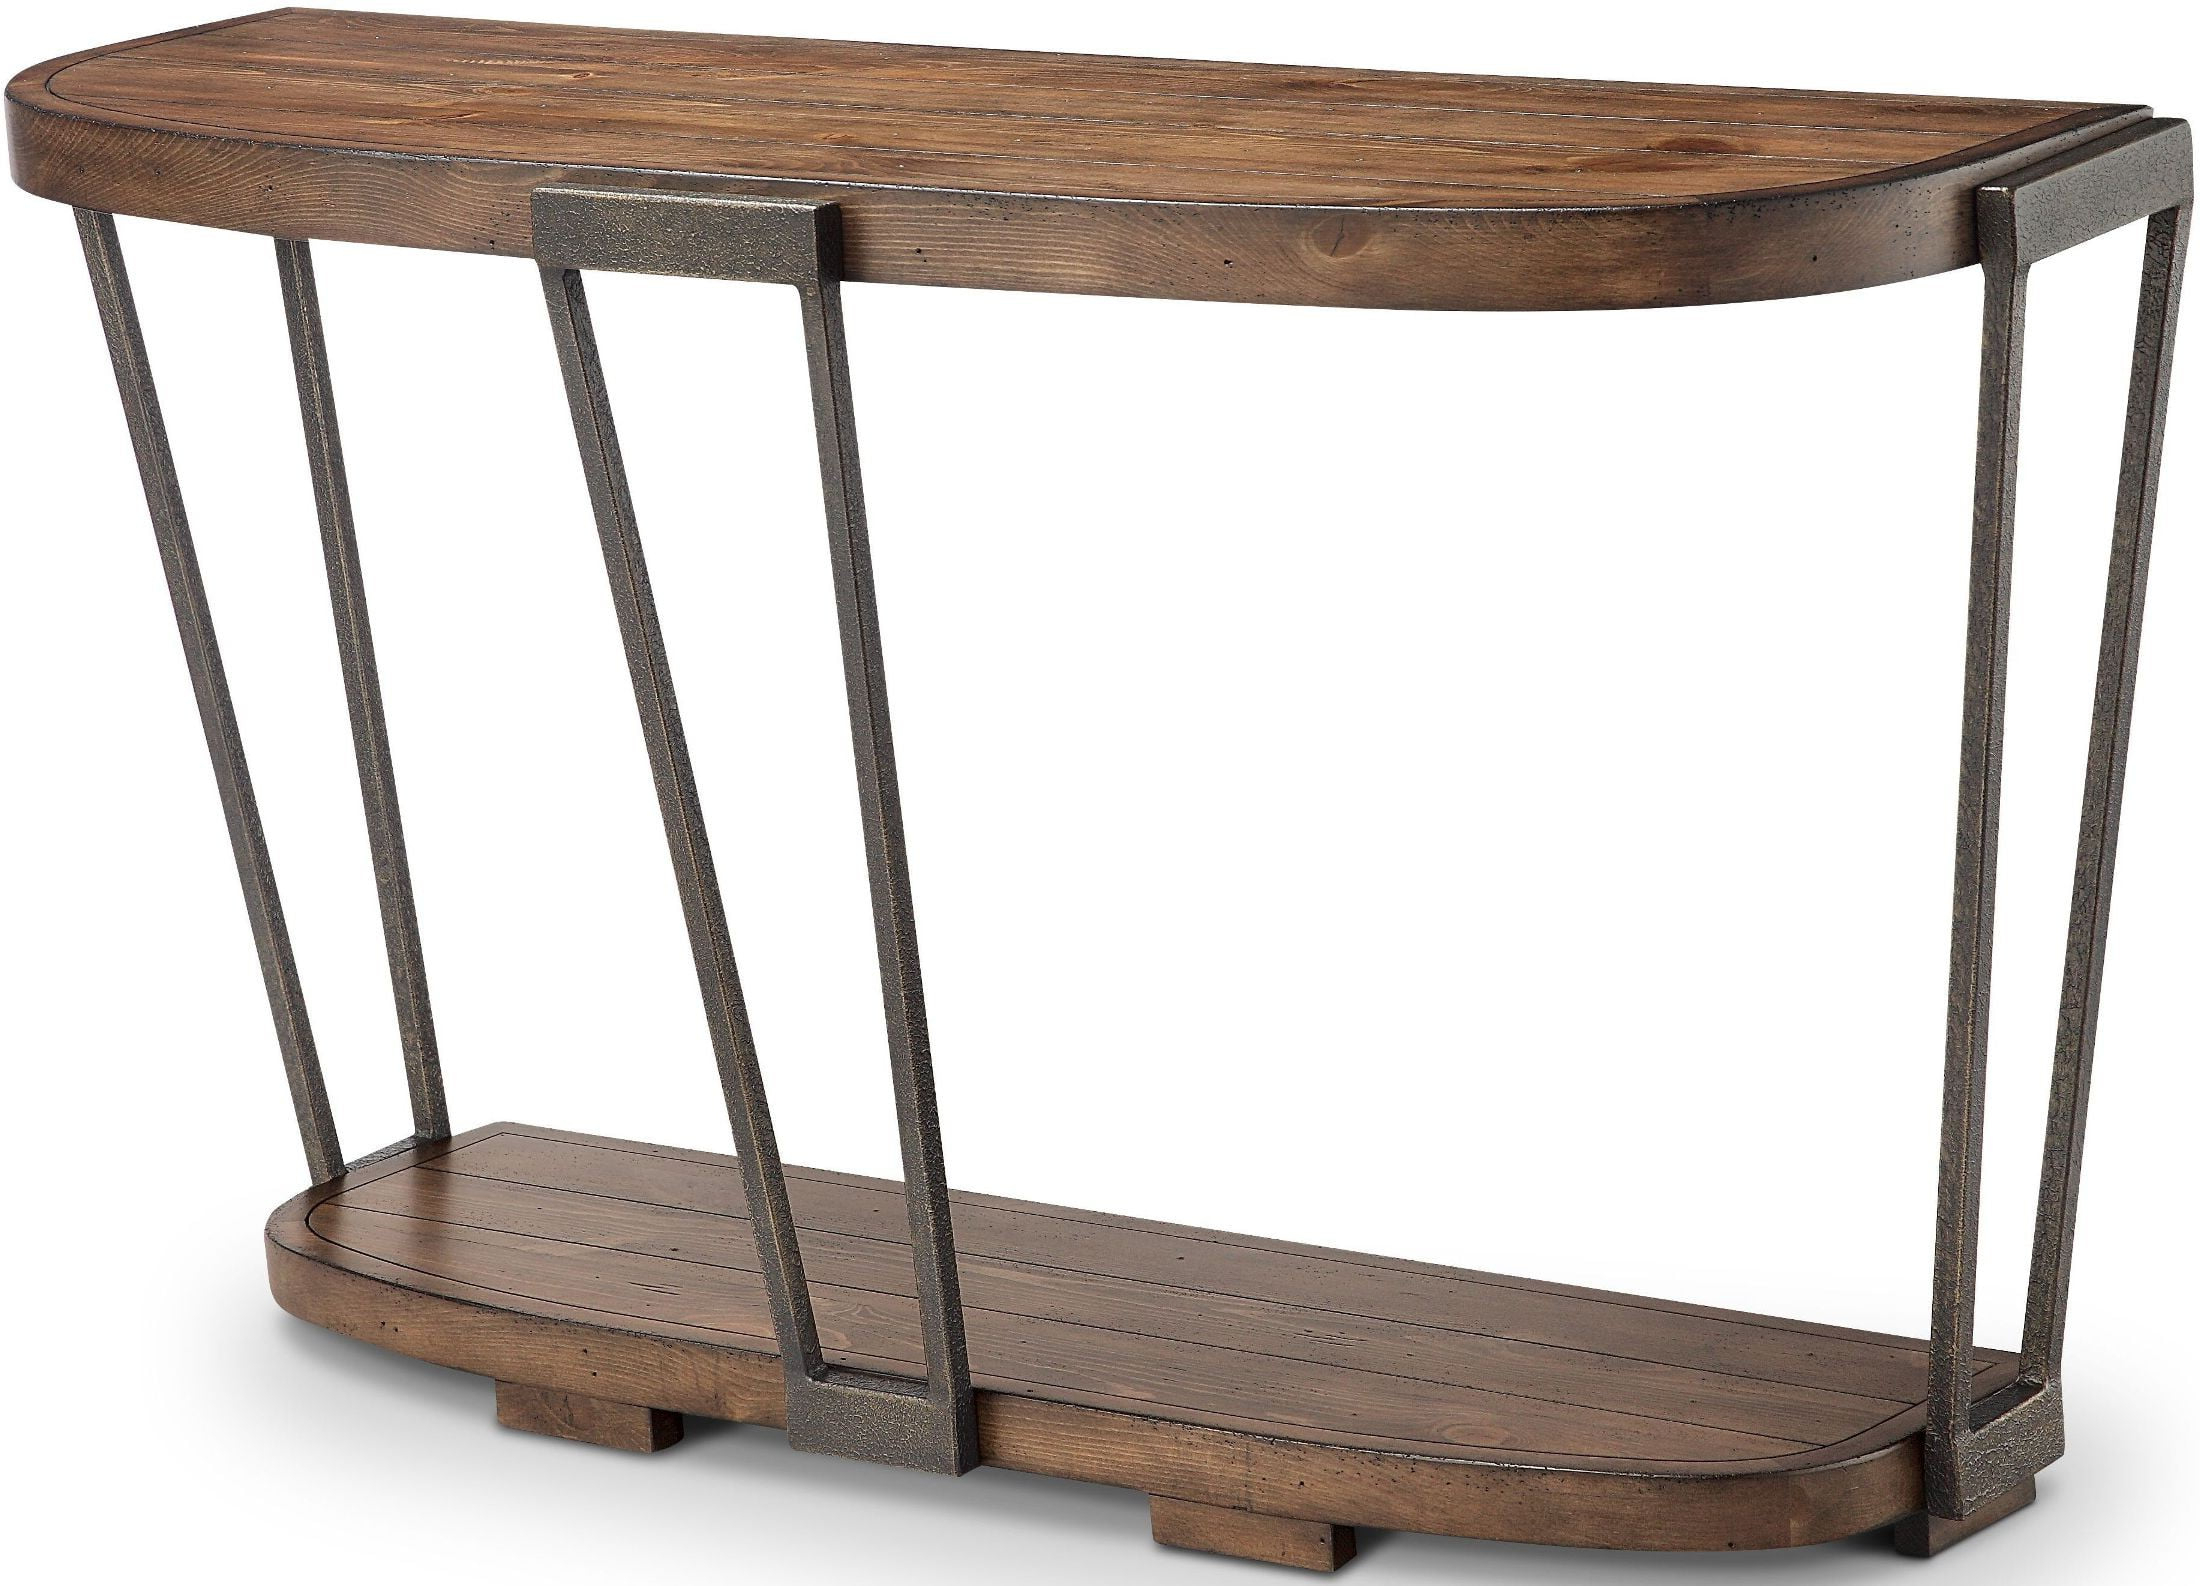 2017 Yukon Natural Console Tables Inside Yukon Bourbon And Aged Iron Demilune Sofa Table From Magnussen Home (View 1 of 20)